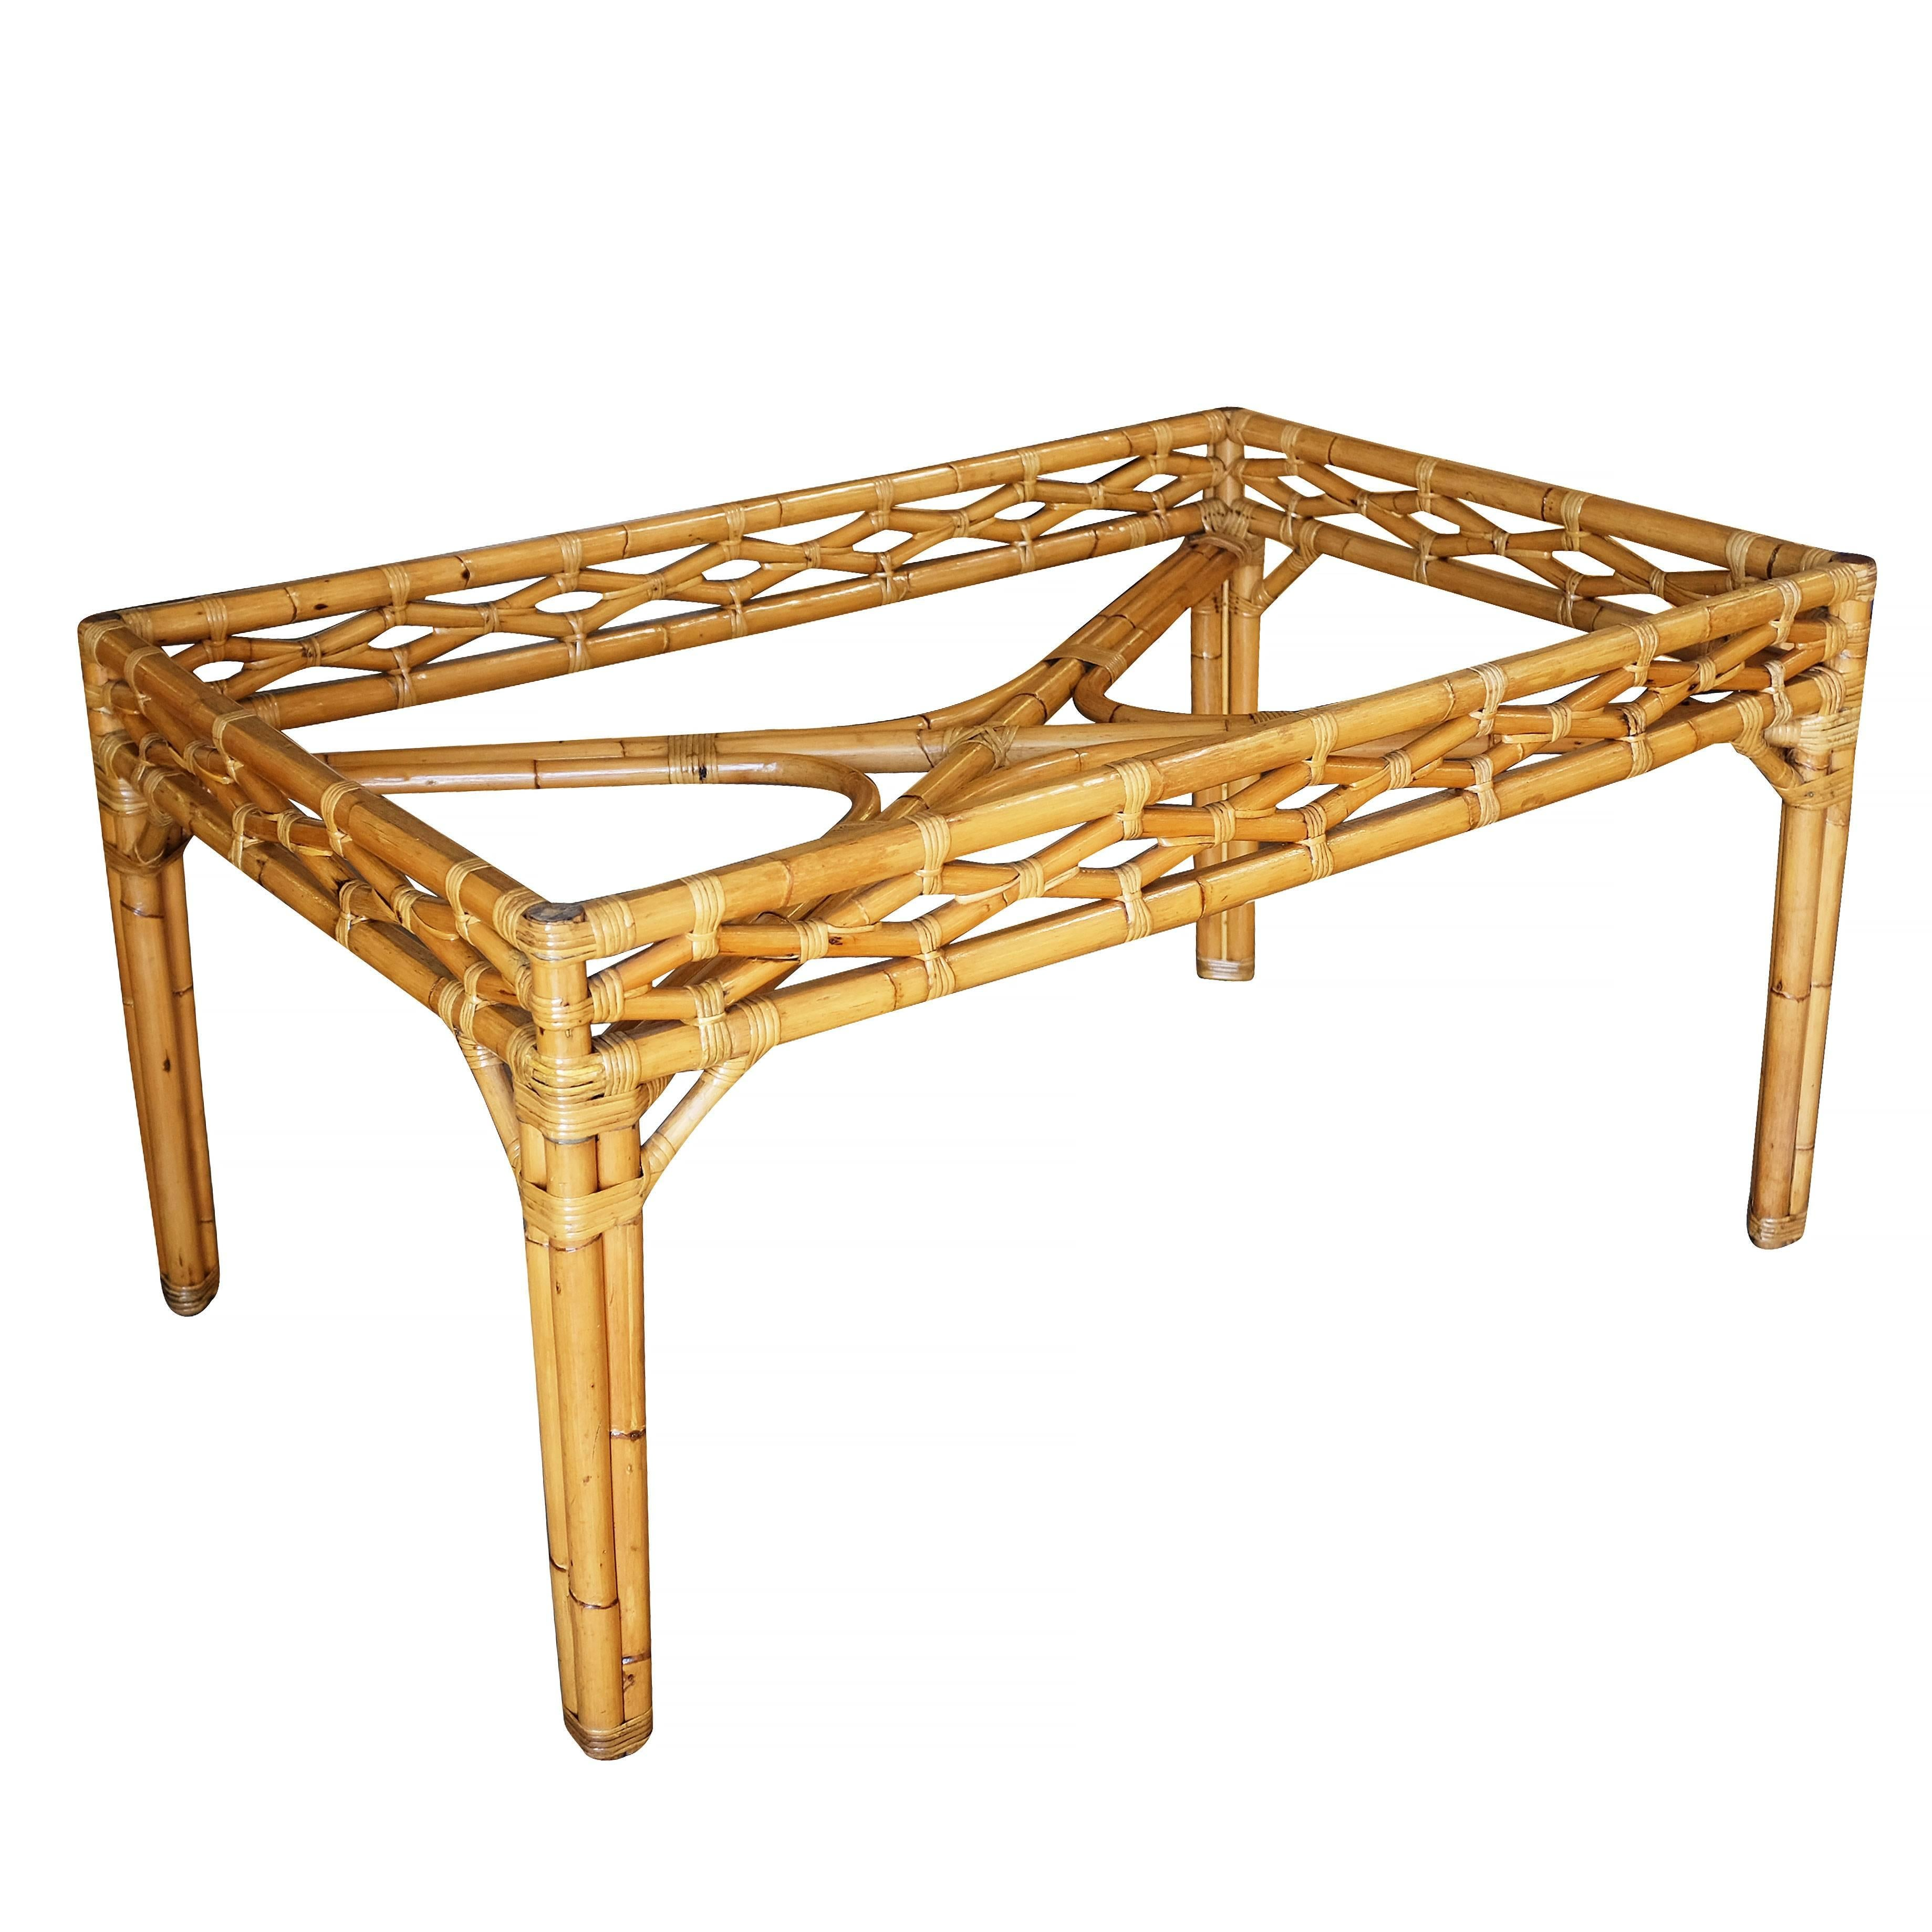 Rattan Table Midcentury Large Rattan Dining Table With Glass Top